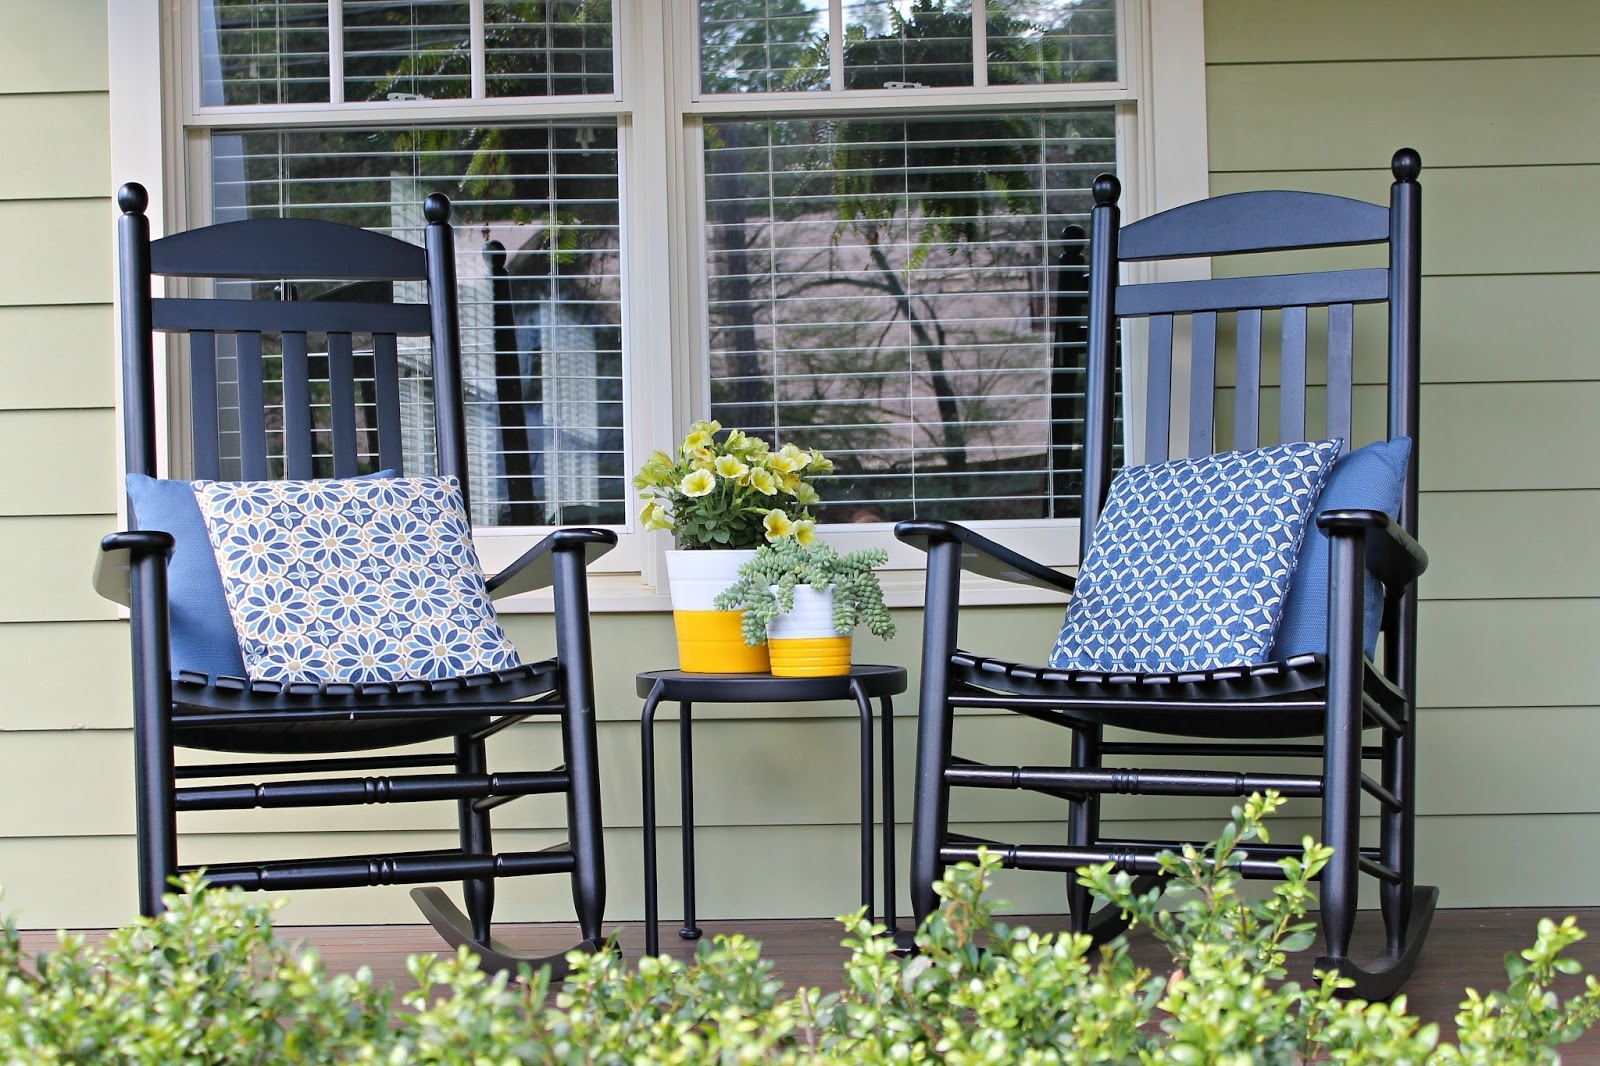 Most Recently Released Small Patio Rocking Chairs Inside The Iconic Style Of Rocking Chair For Chairs Front Porch Design  (View 4 of 15)